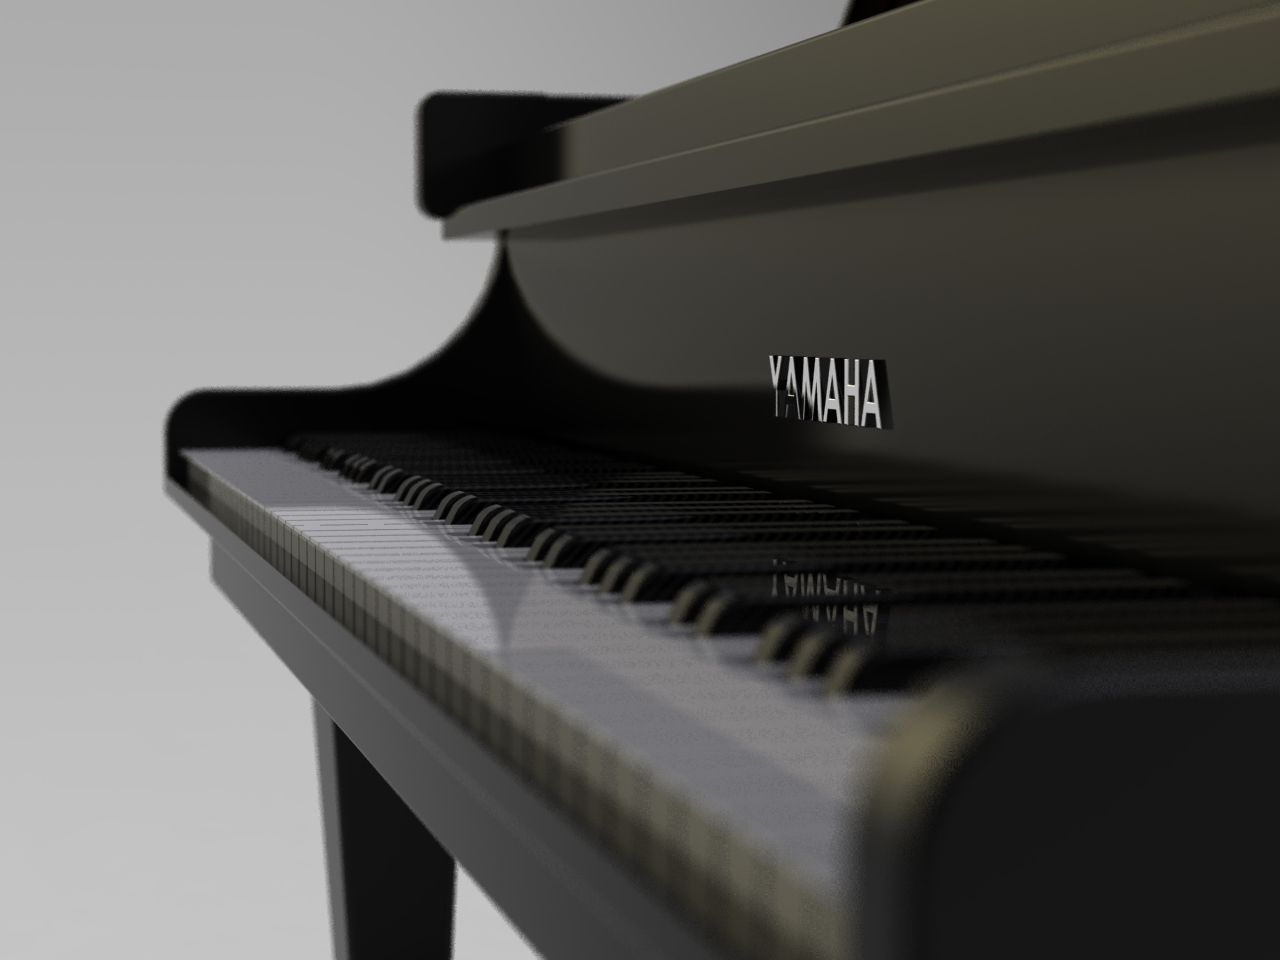 steinway grand piano wallpaper - Google Search | Best ...